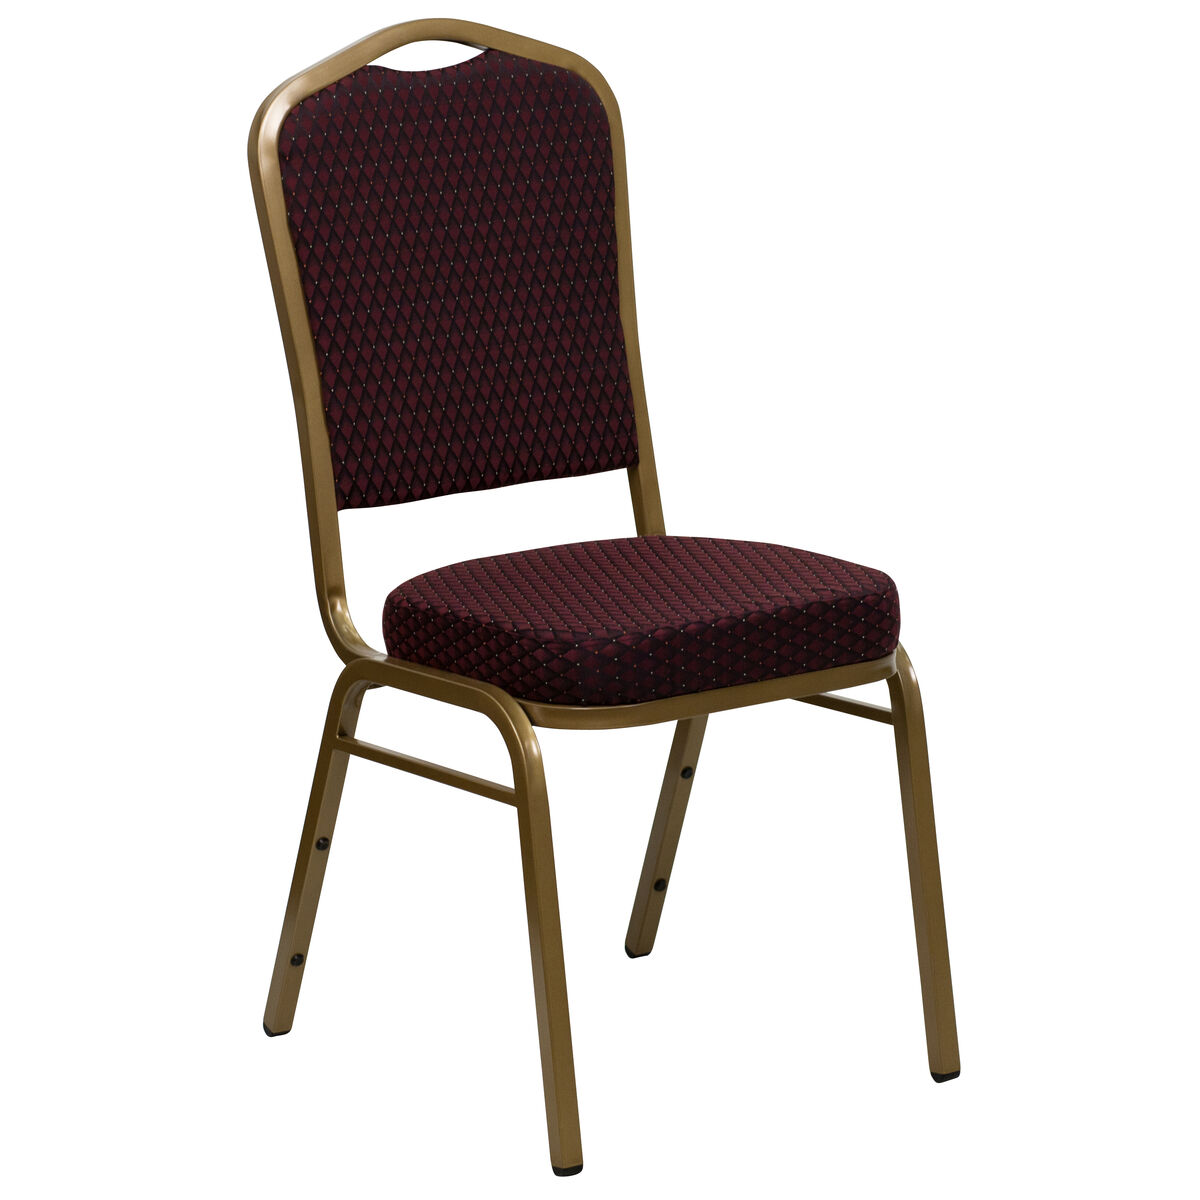 Crown Back Stacking Banquet Chair in Burgundy Patterned Fabric - Gold Frame